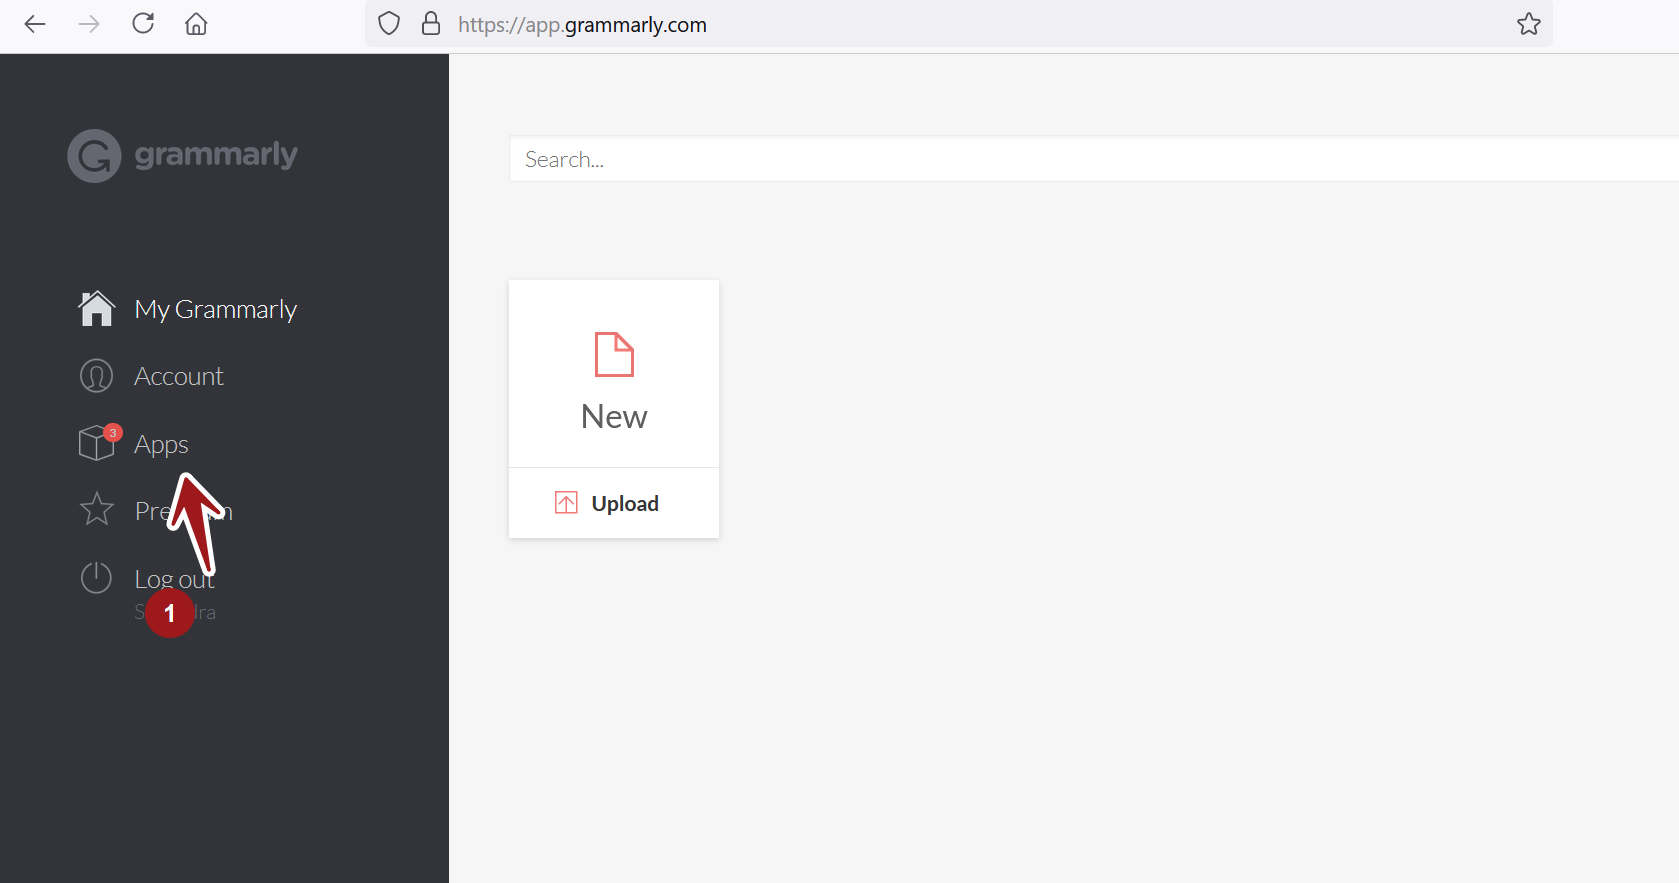 My Grammarly Page